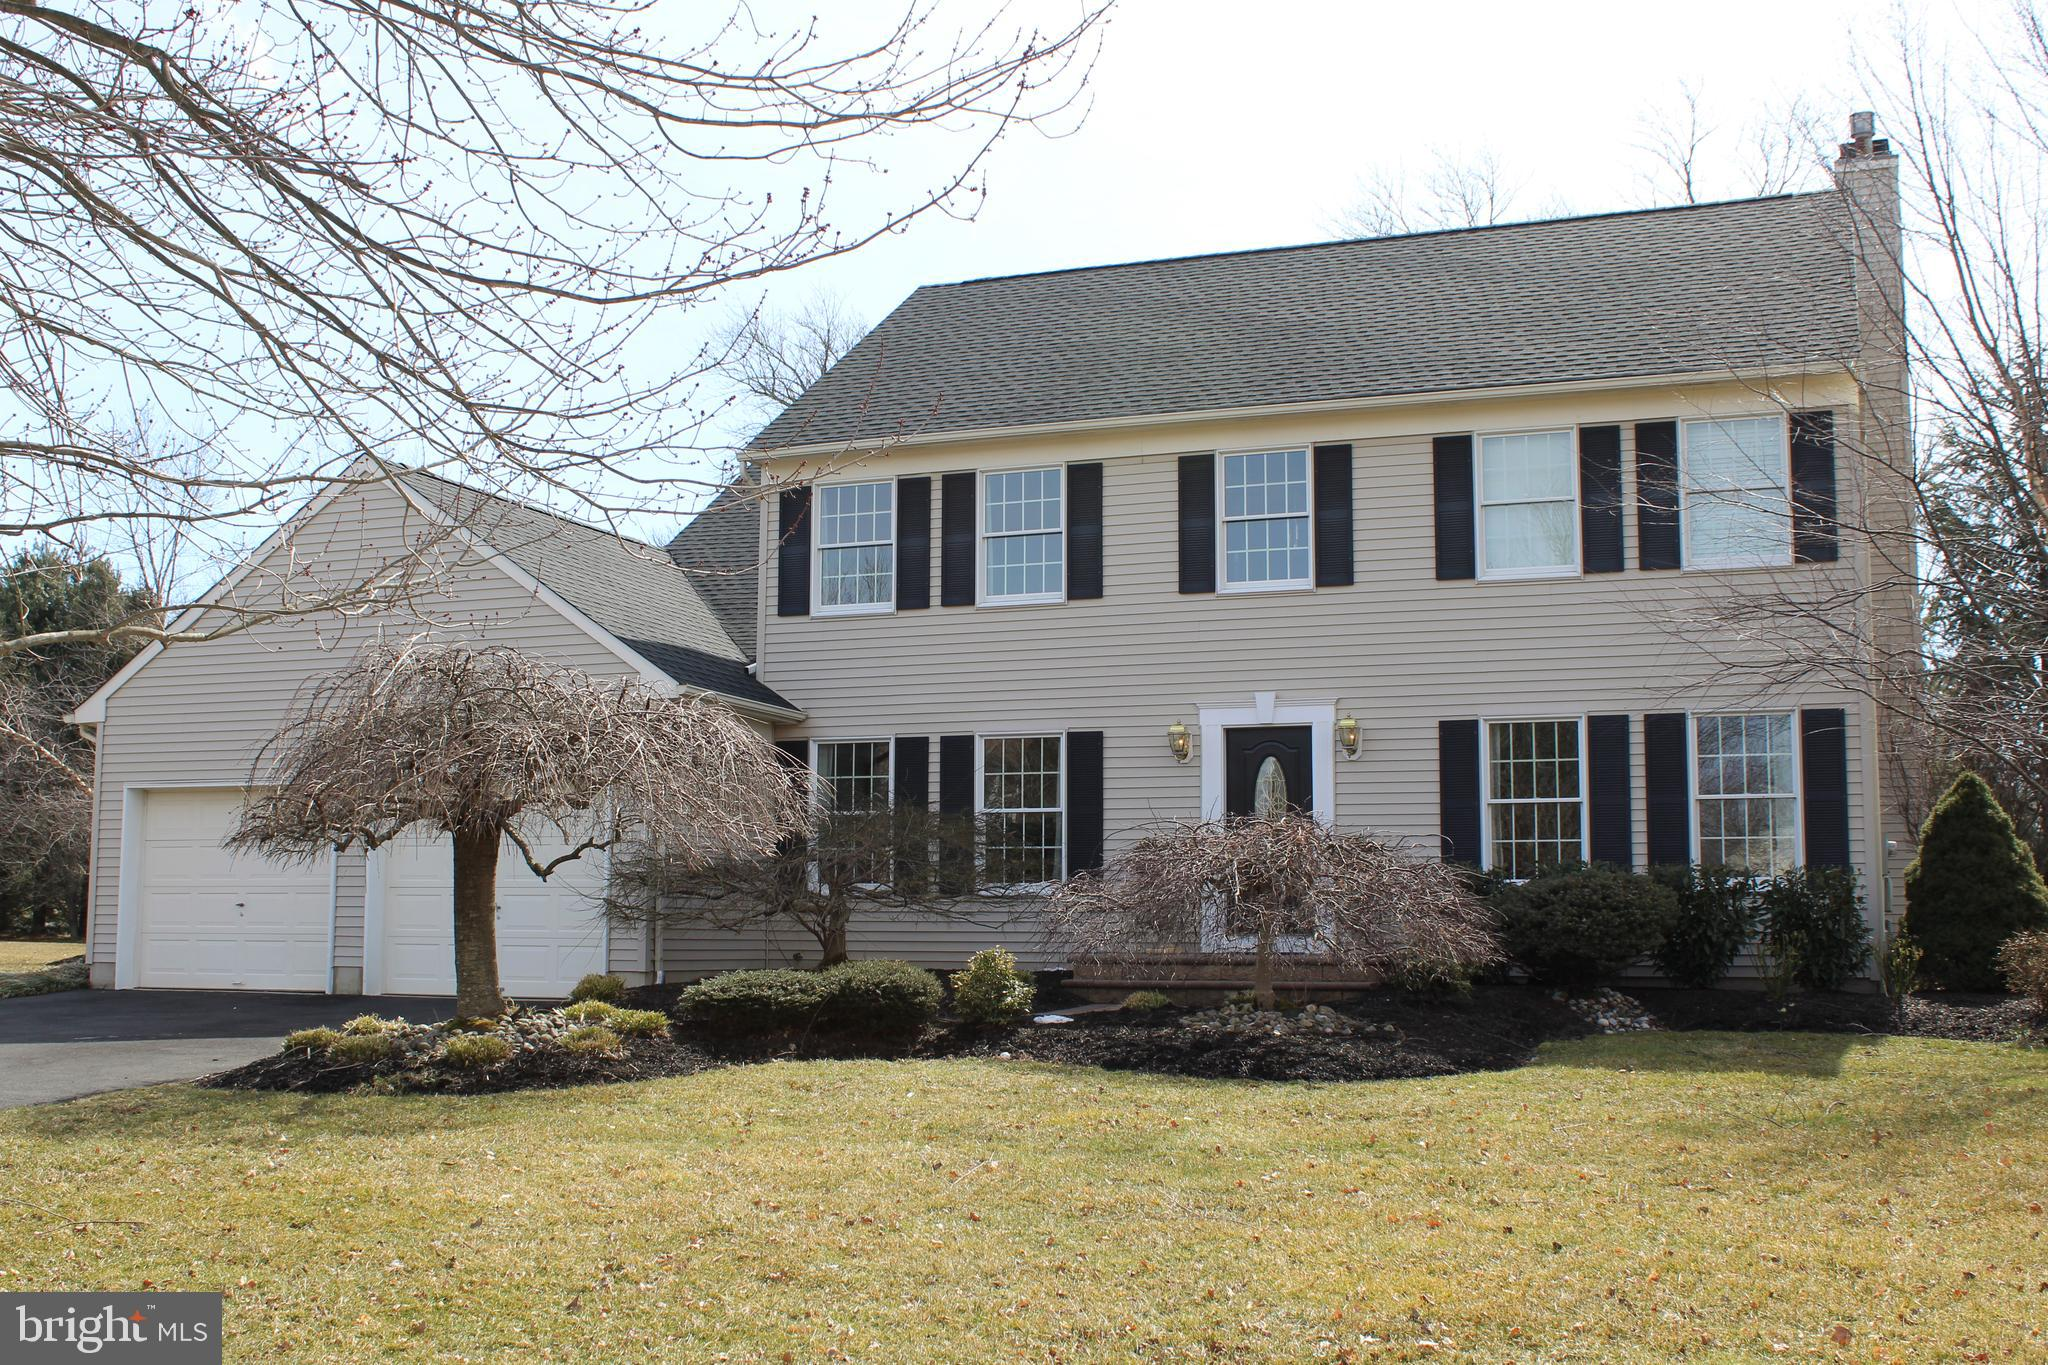 7 BARRINGTON DRIVE, PRINCETON JUNCTION, NJ 08550